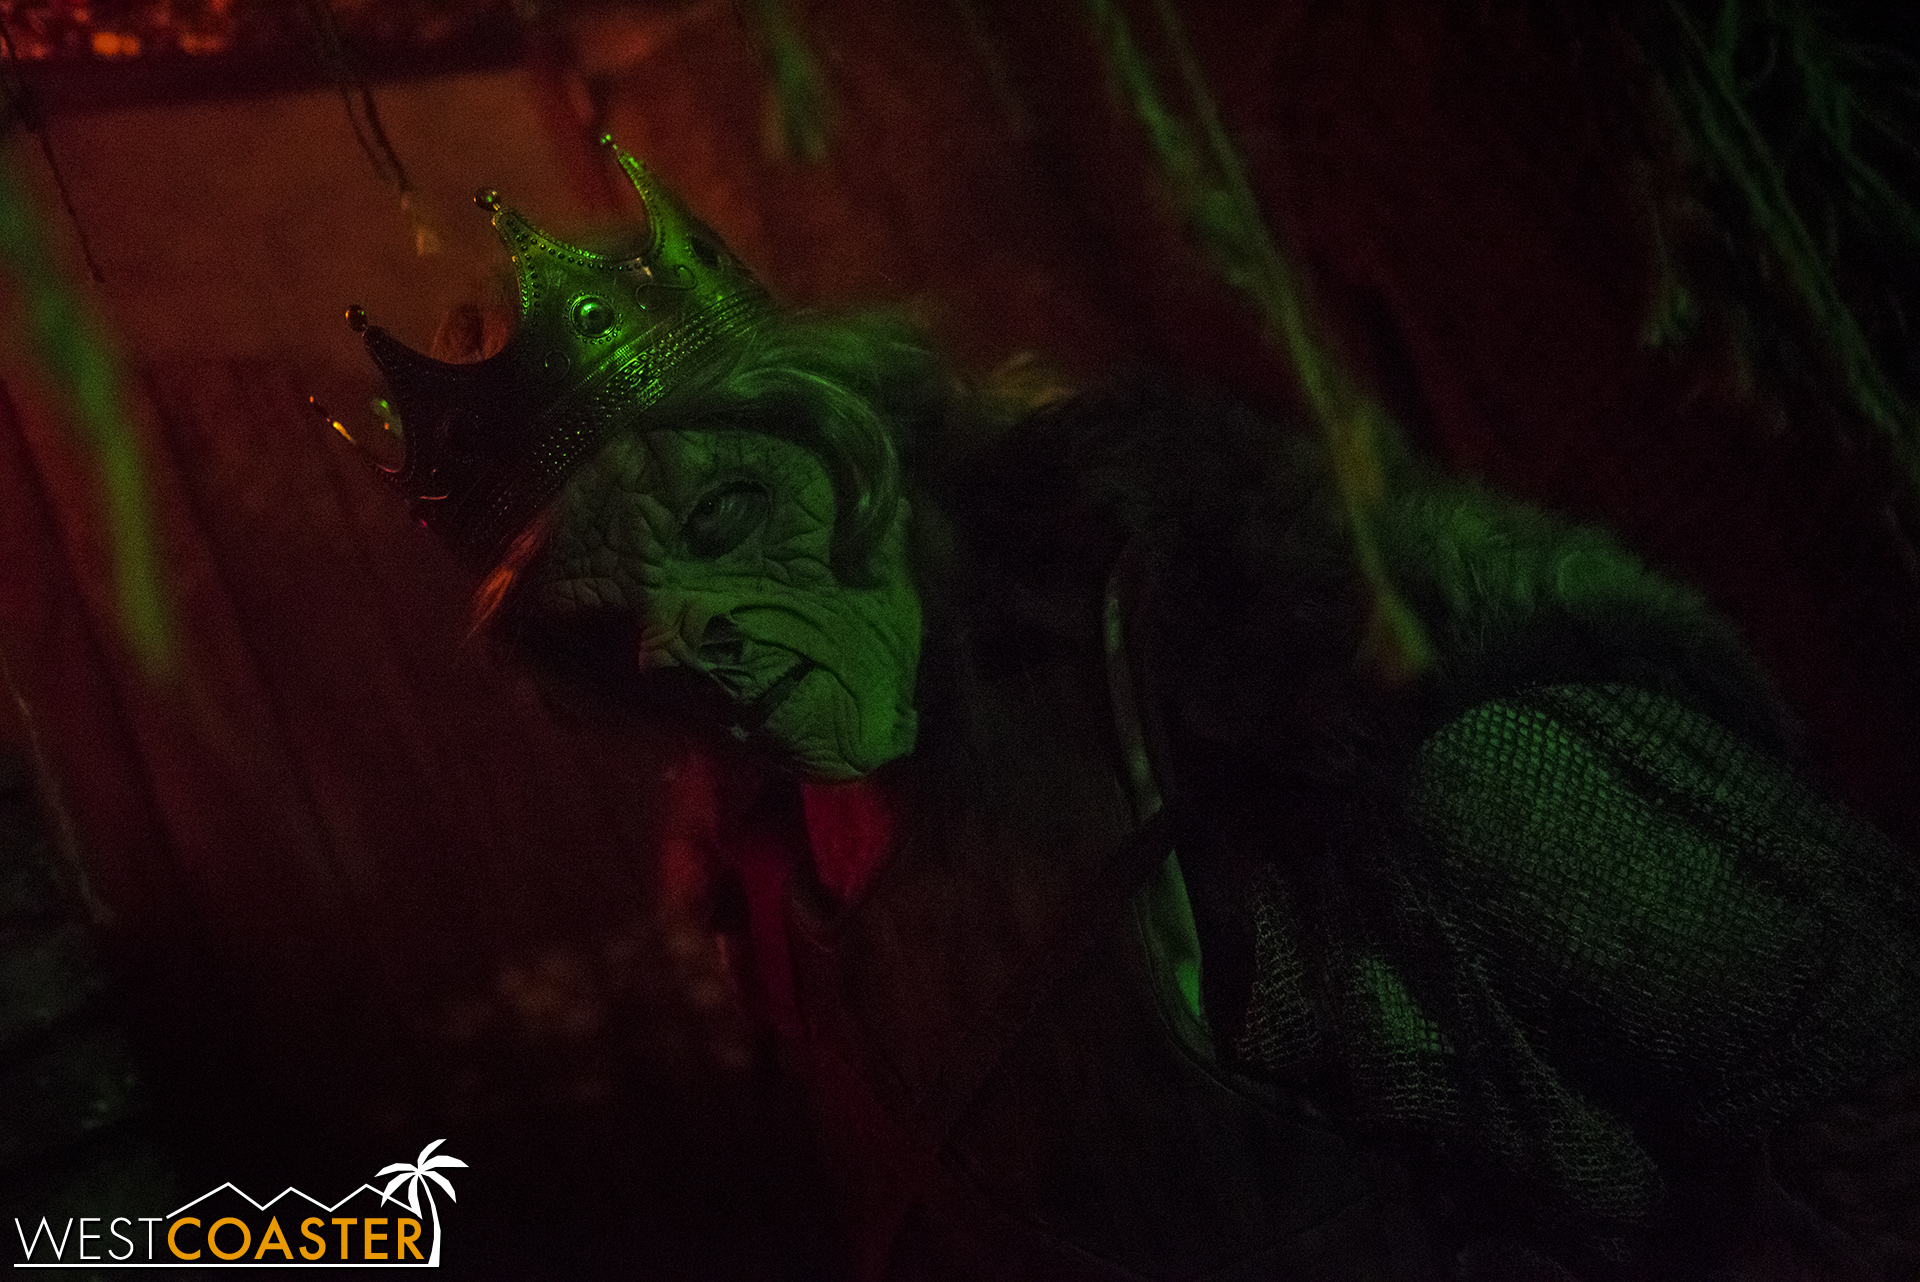 The king welcomes you to the Dark Realm. Just look out for the dragon.